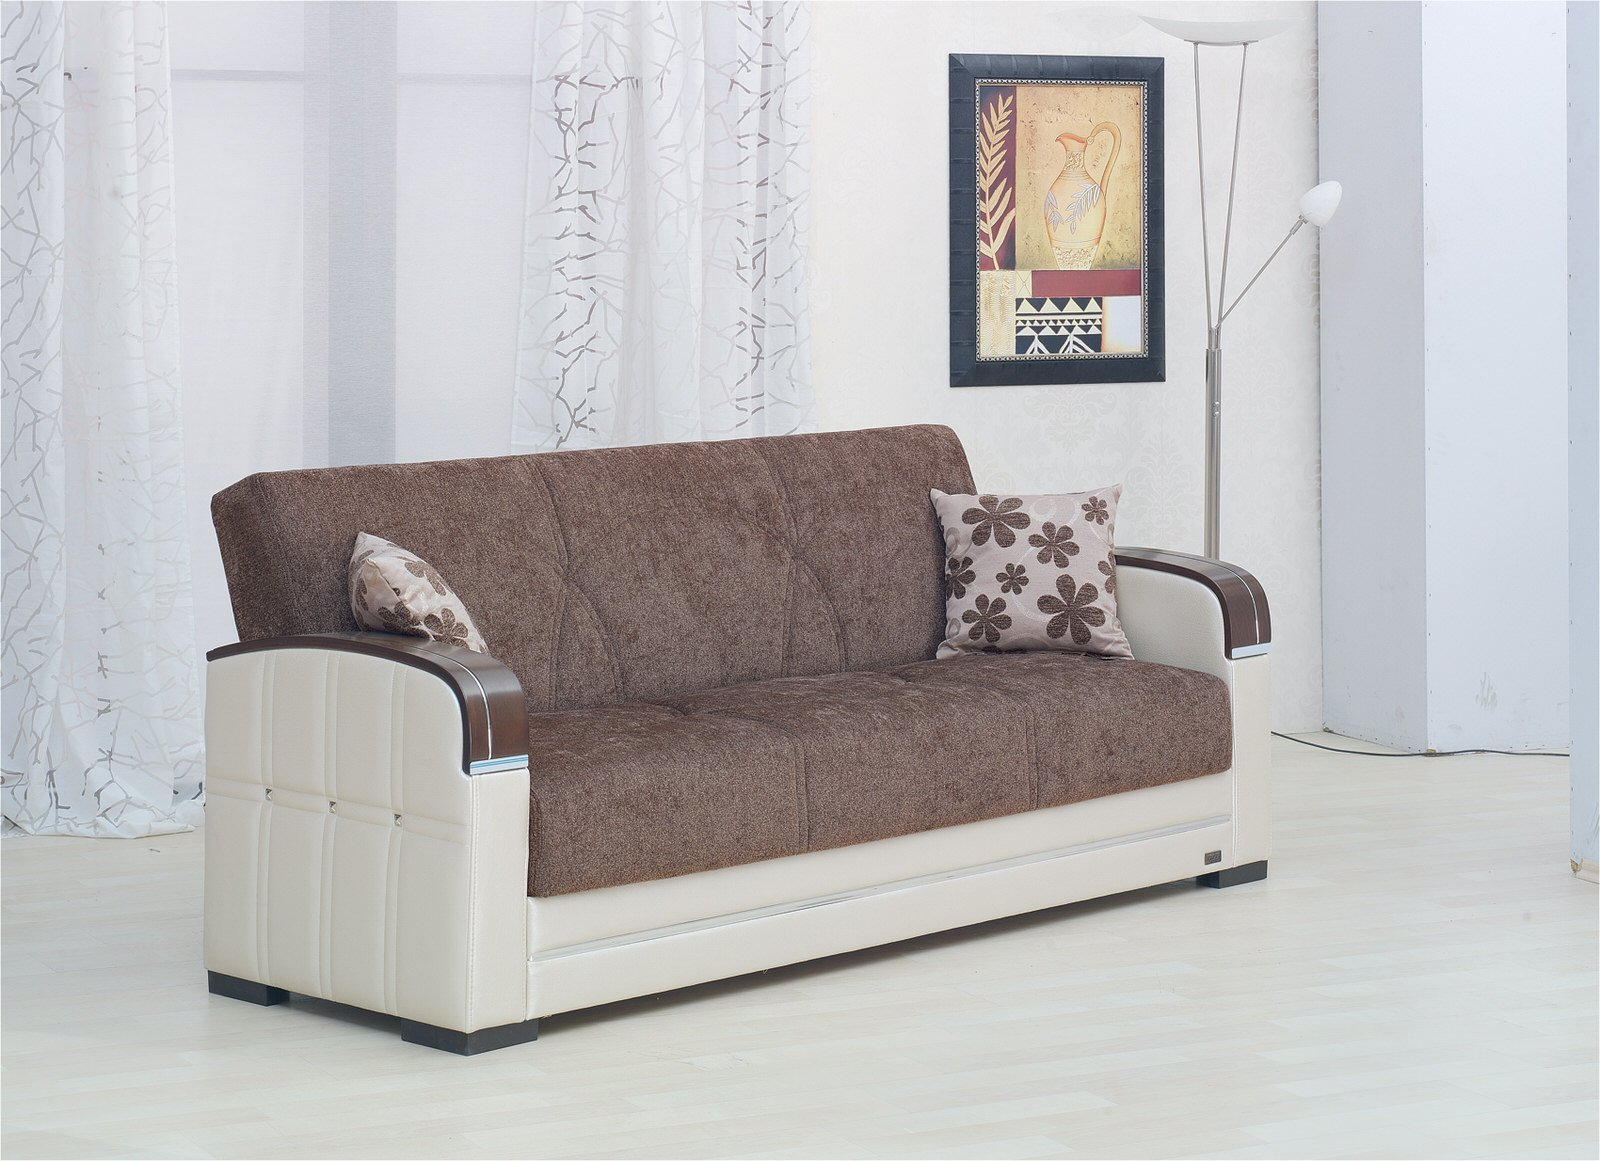 Bed Size For Providence Rest